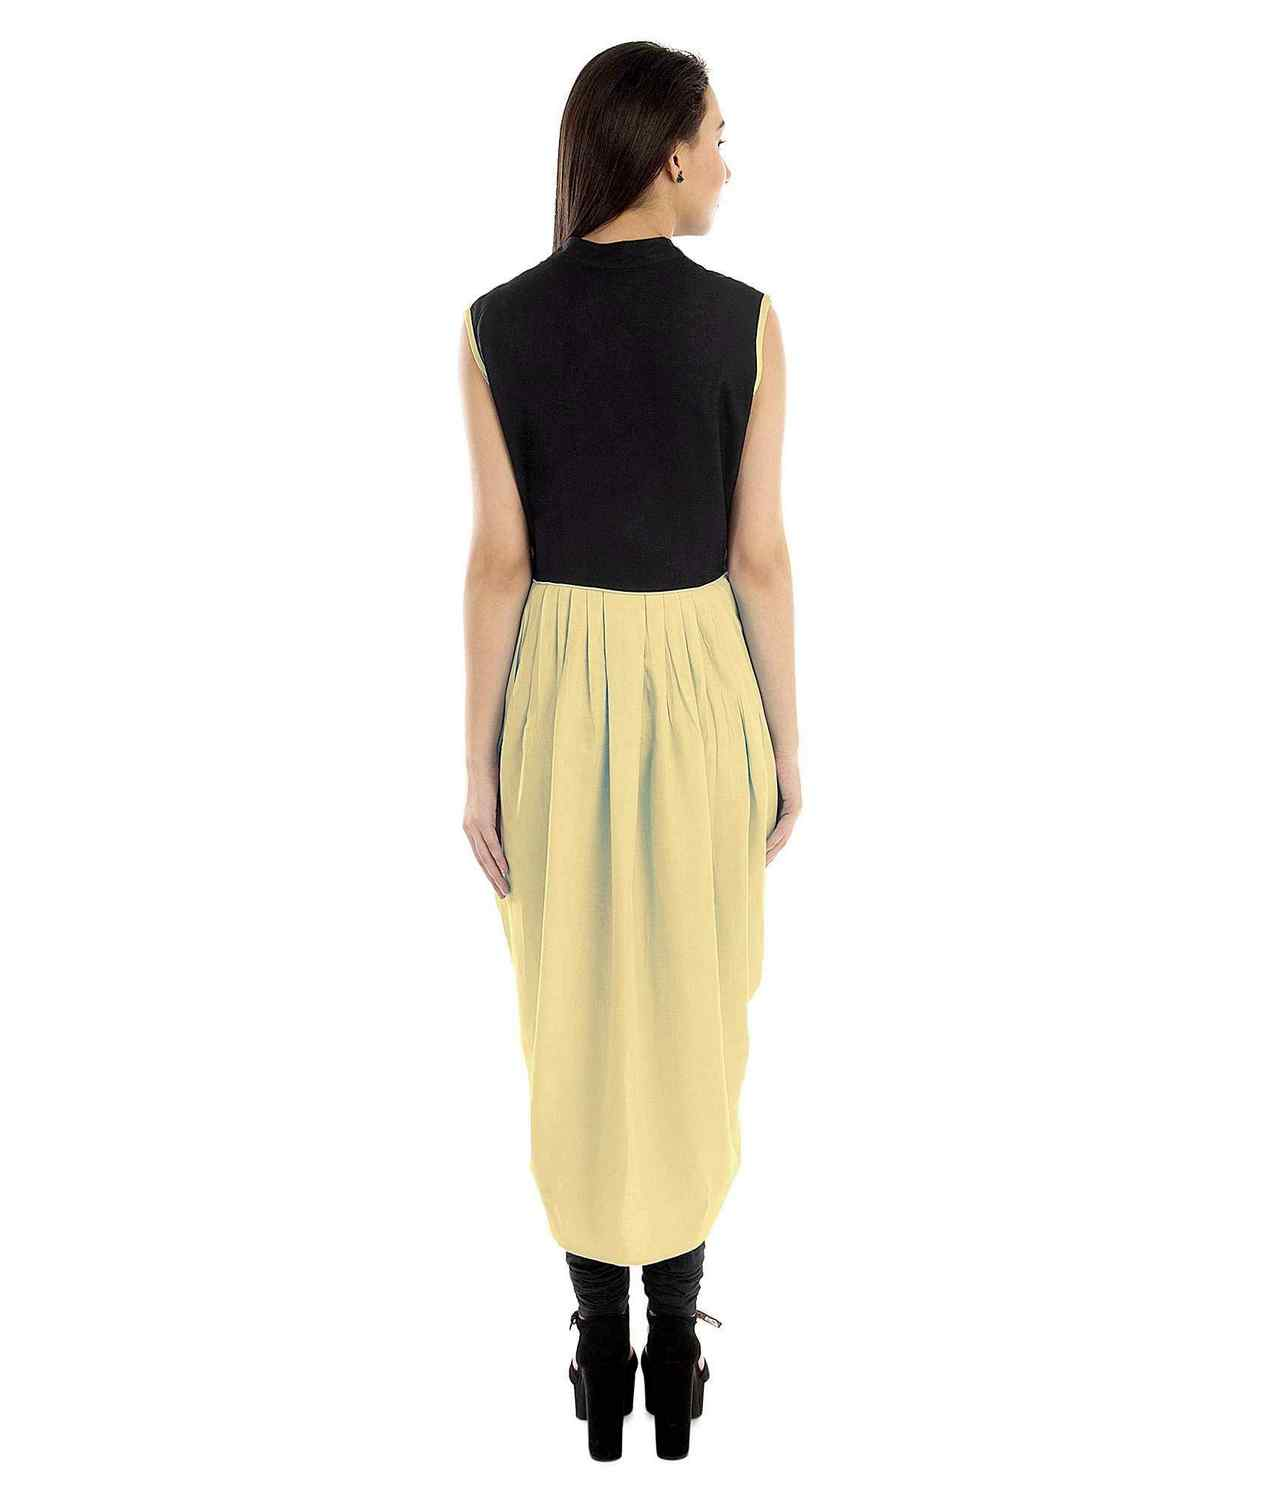 Top  Dhoti Style Cocktail Midi Dress  in Black:Gold